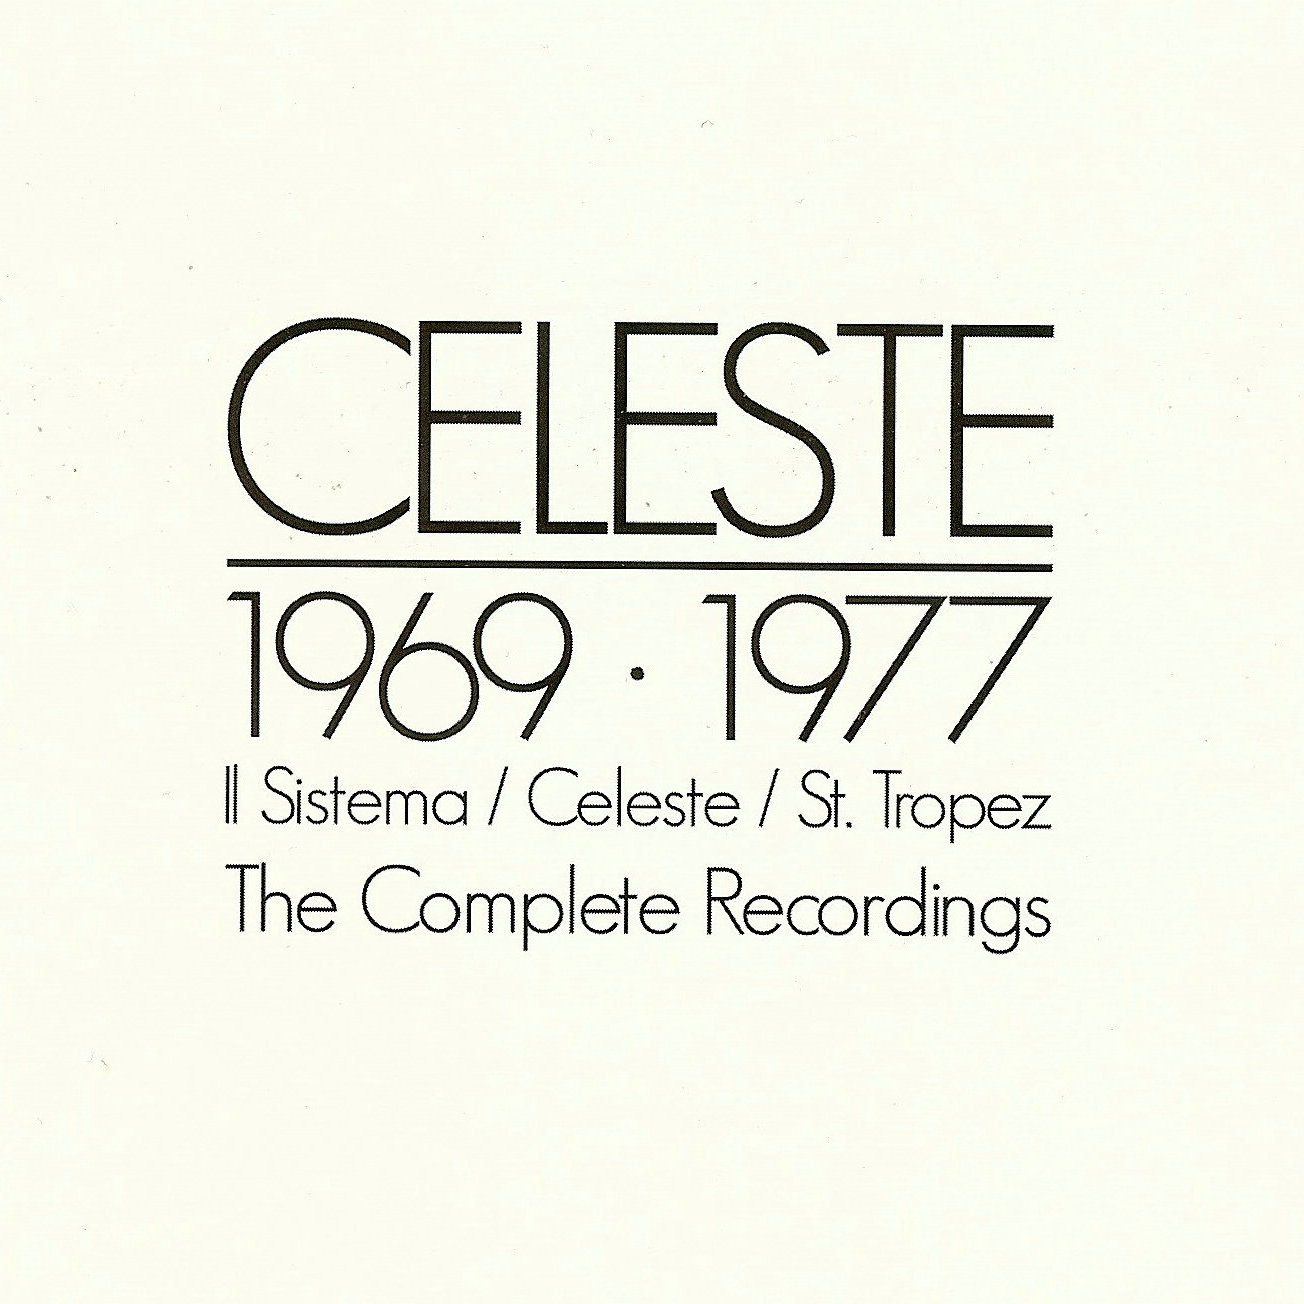 Celeste 1969-1977: The Complete Recordings album cover